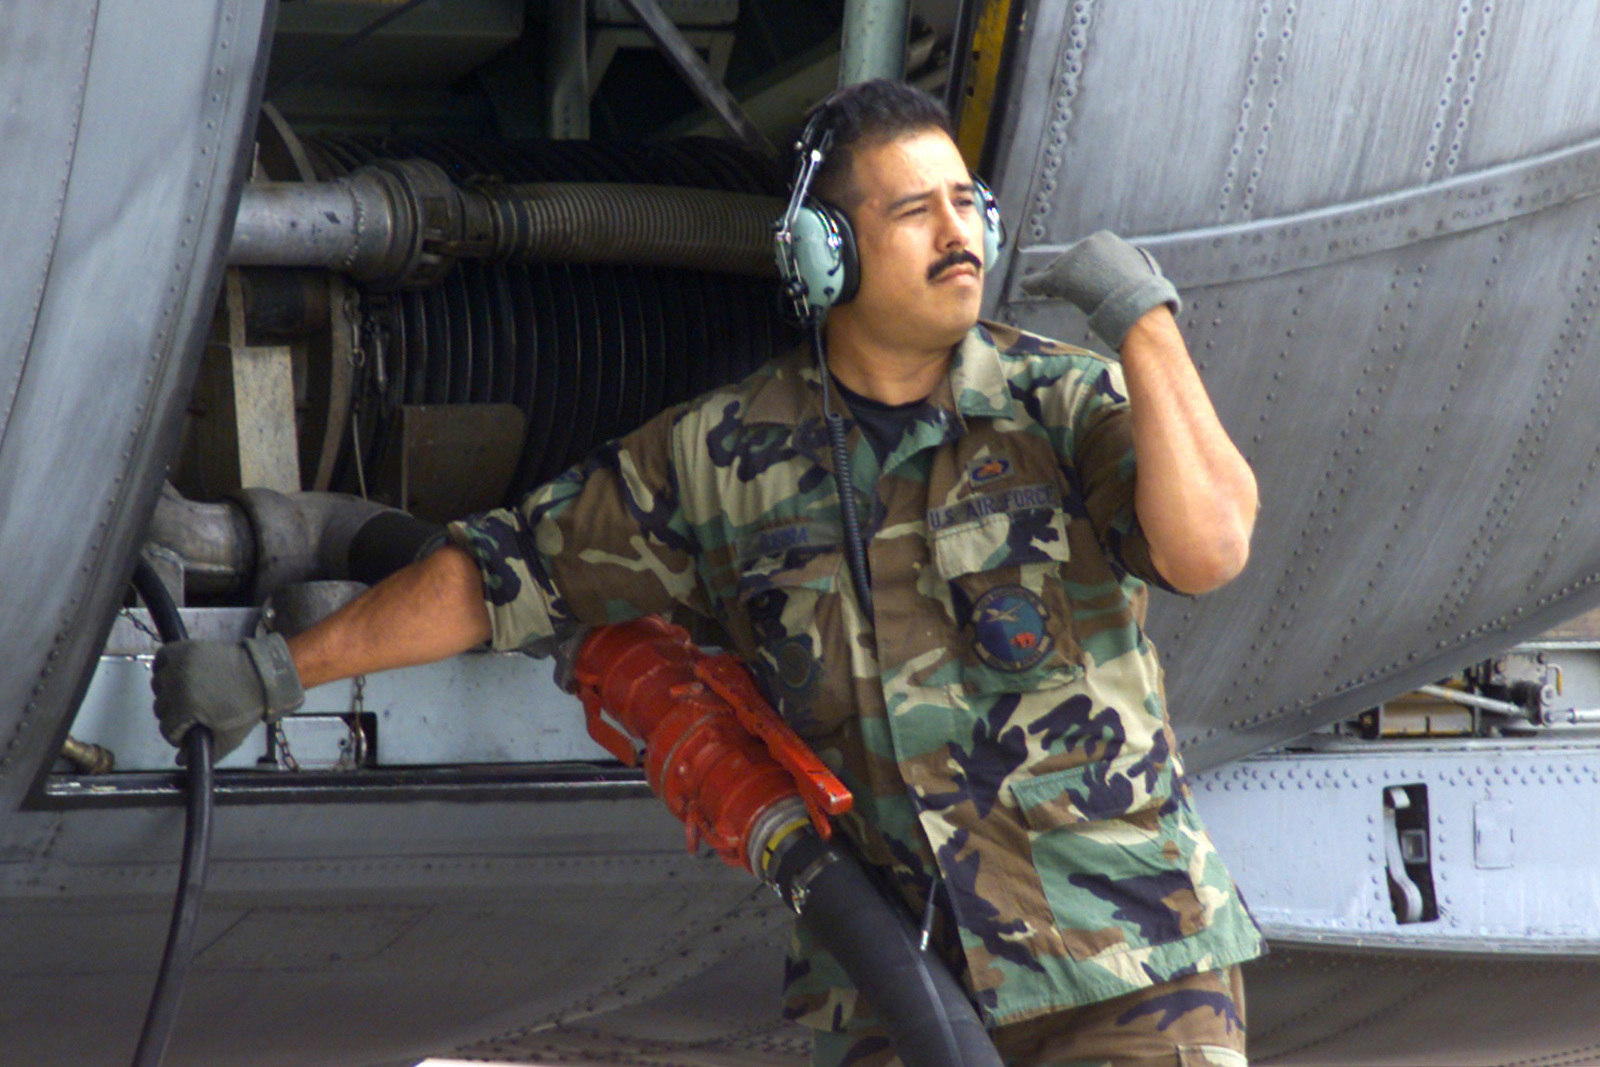 US Air Force (USAF) Technical Sergeant (TSGT) Victor Guerra, signals to cut off the flow of Phoschek, a chemical fire retardant, being pumped into a Module Airborne Fire Fighting System (MAFFS) unit aboard a US Air Force (USAF) C-130E Hercules aircraft at Channel Islands Air National Guard Station (ANGS), California (CA), as the California Department of Forestry prepares to fight numerous wildfires in California